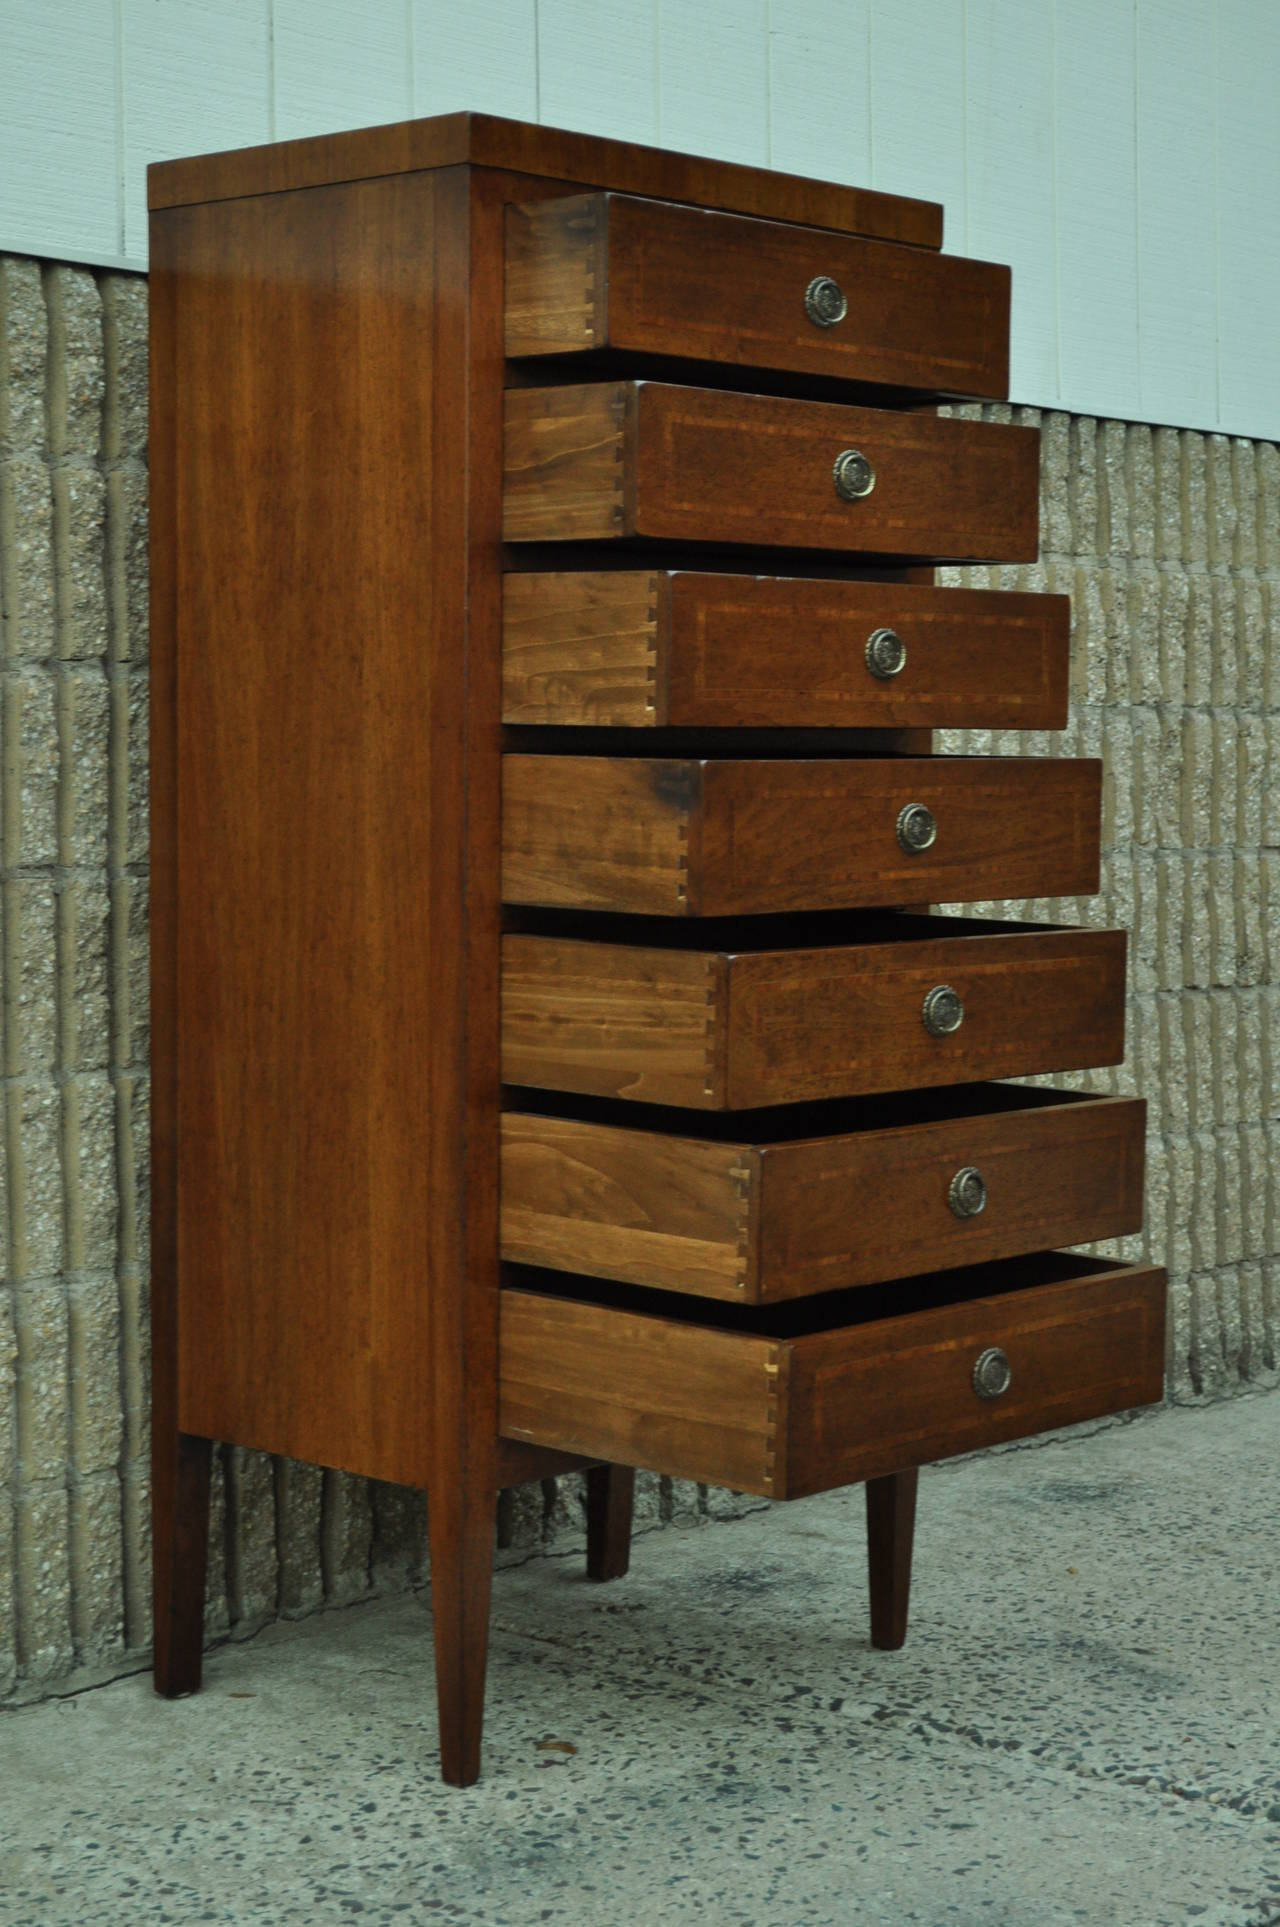 scarlett chests edmonton lingerie and chest superstore furniture drawers canada alberta dressers